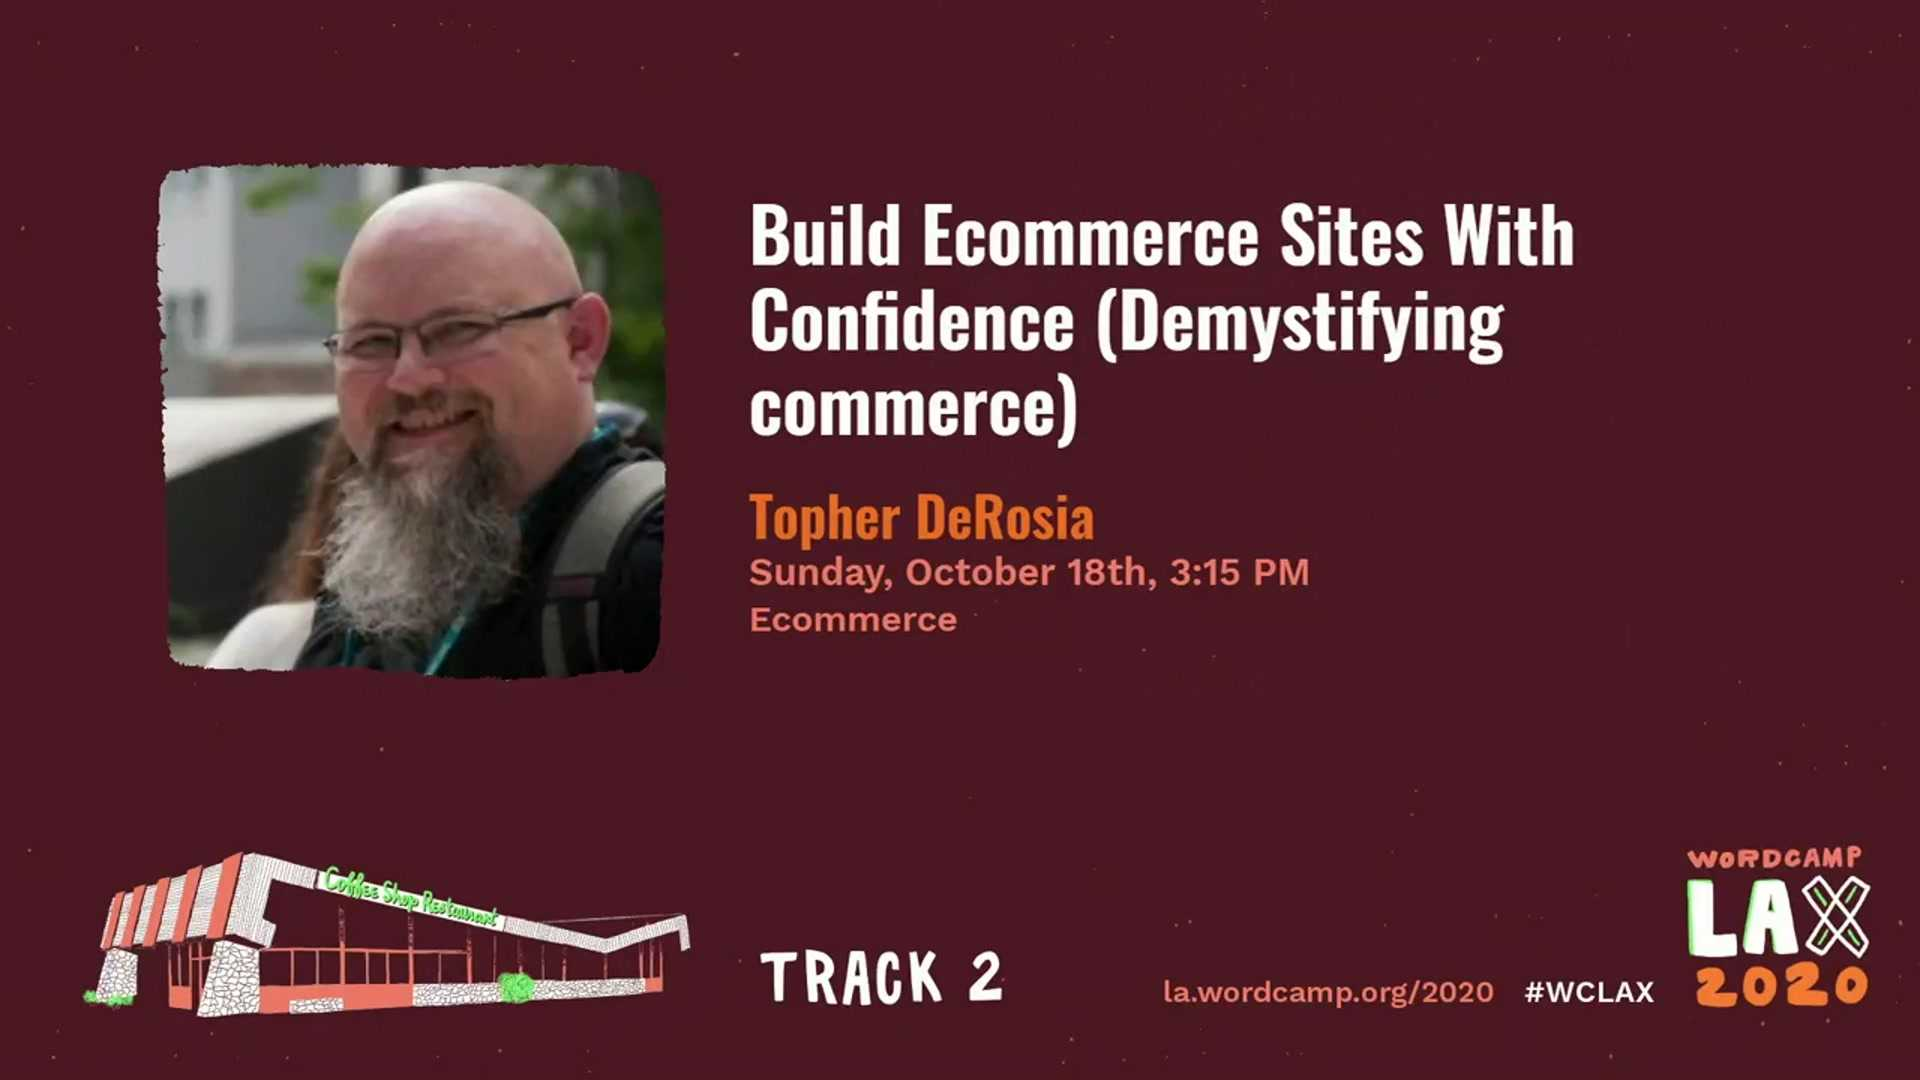 Topher DeRosia: Build Ecommerce Sites With Confidence (Demystifying commerce)